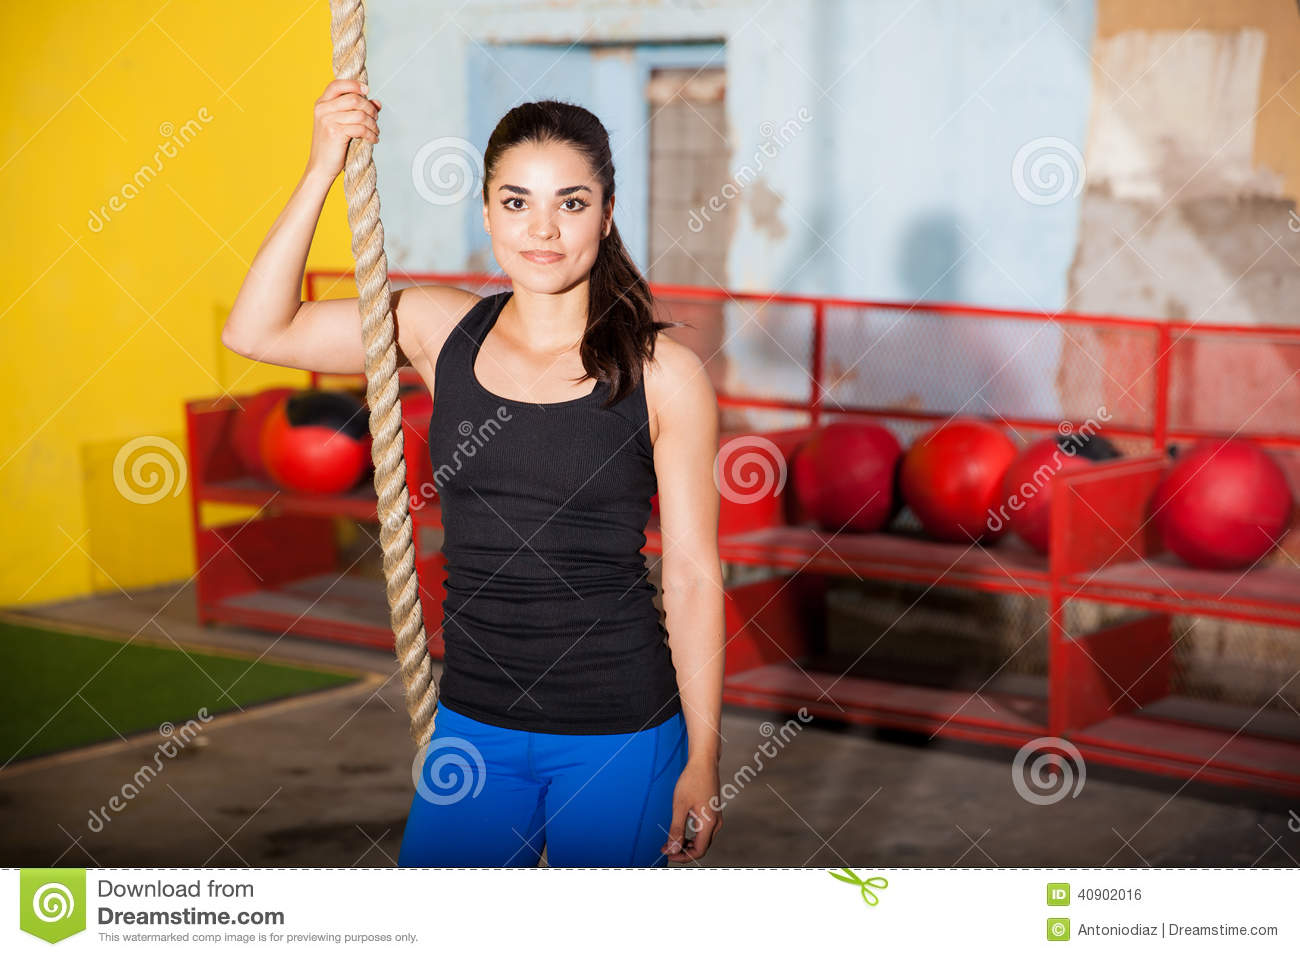 Enjoying her training in a gym